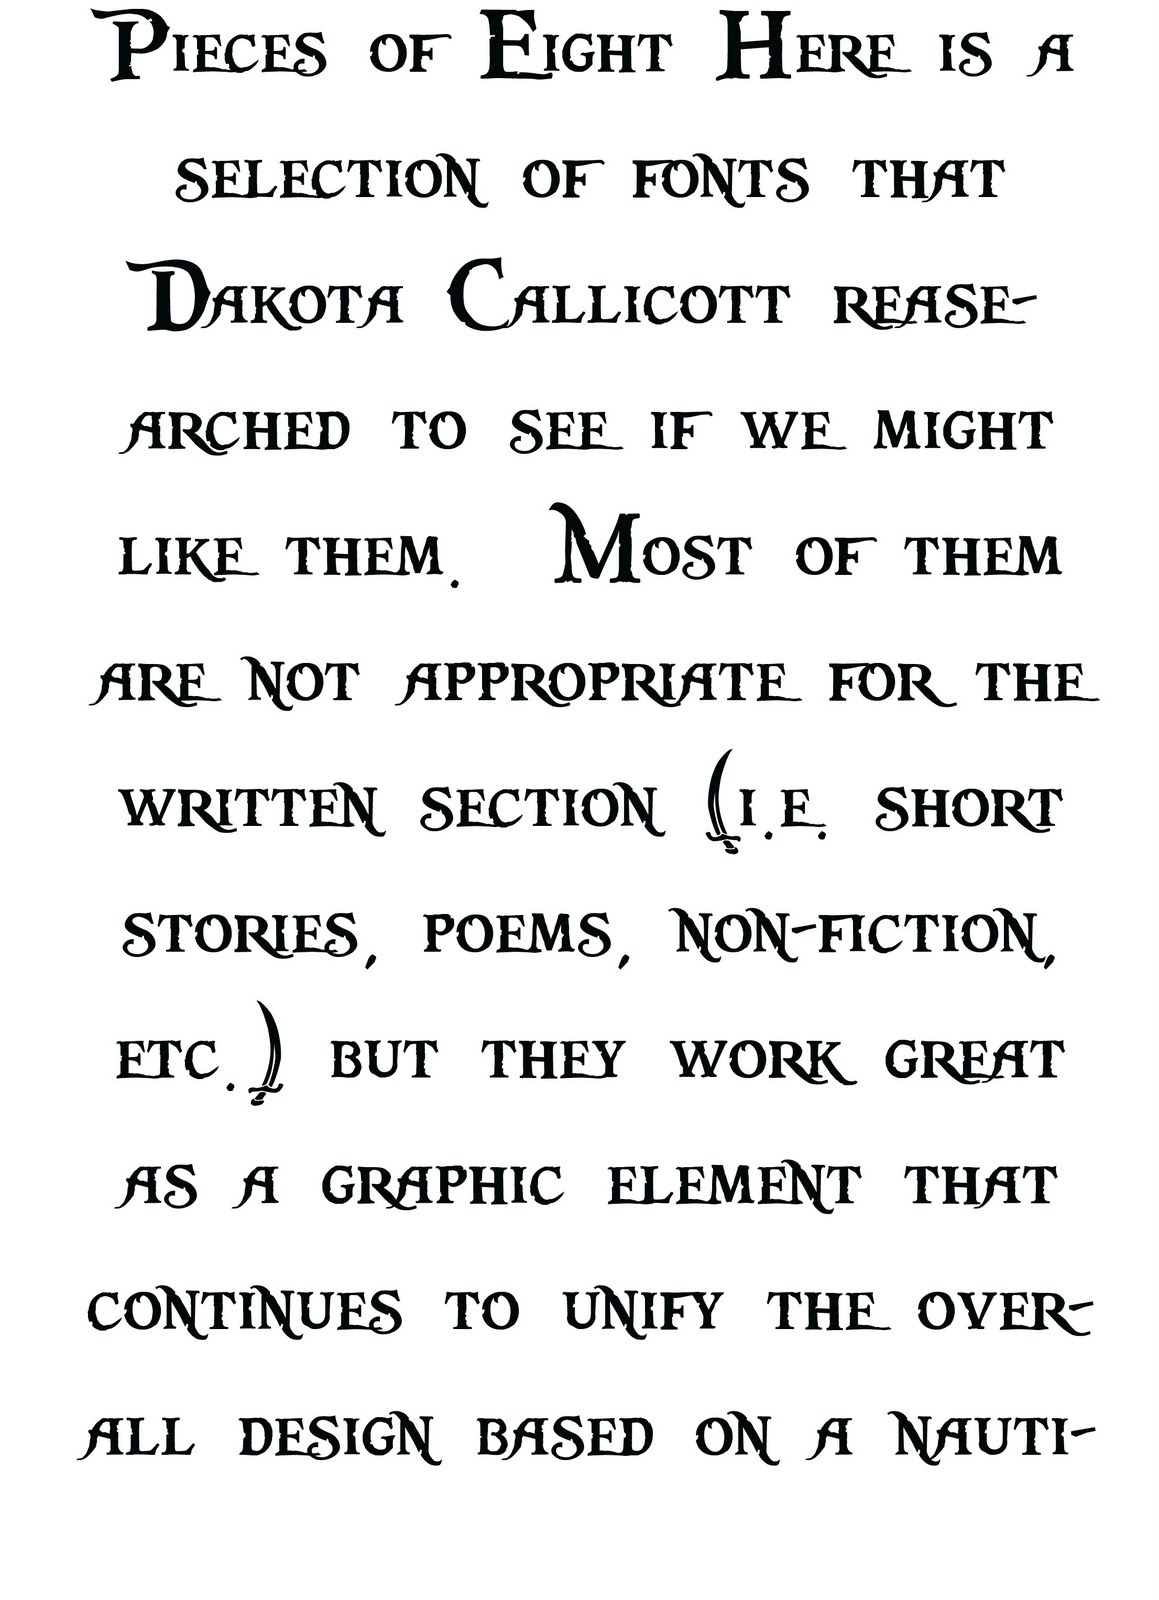 The Scrimshaw: Fonts researched by Dakota